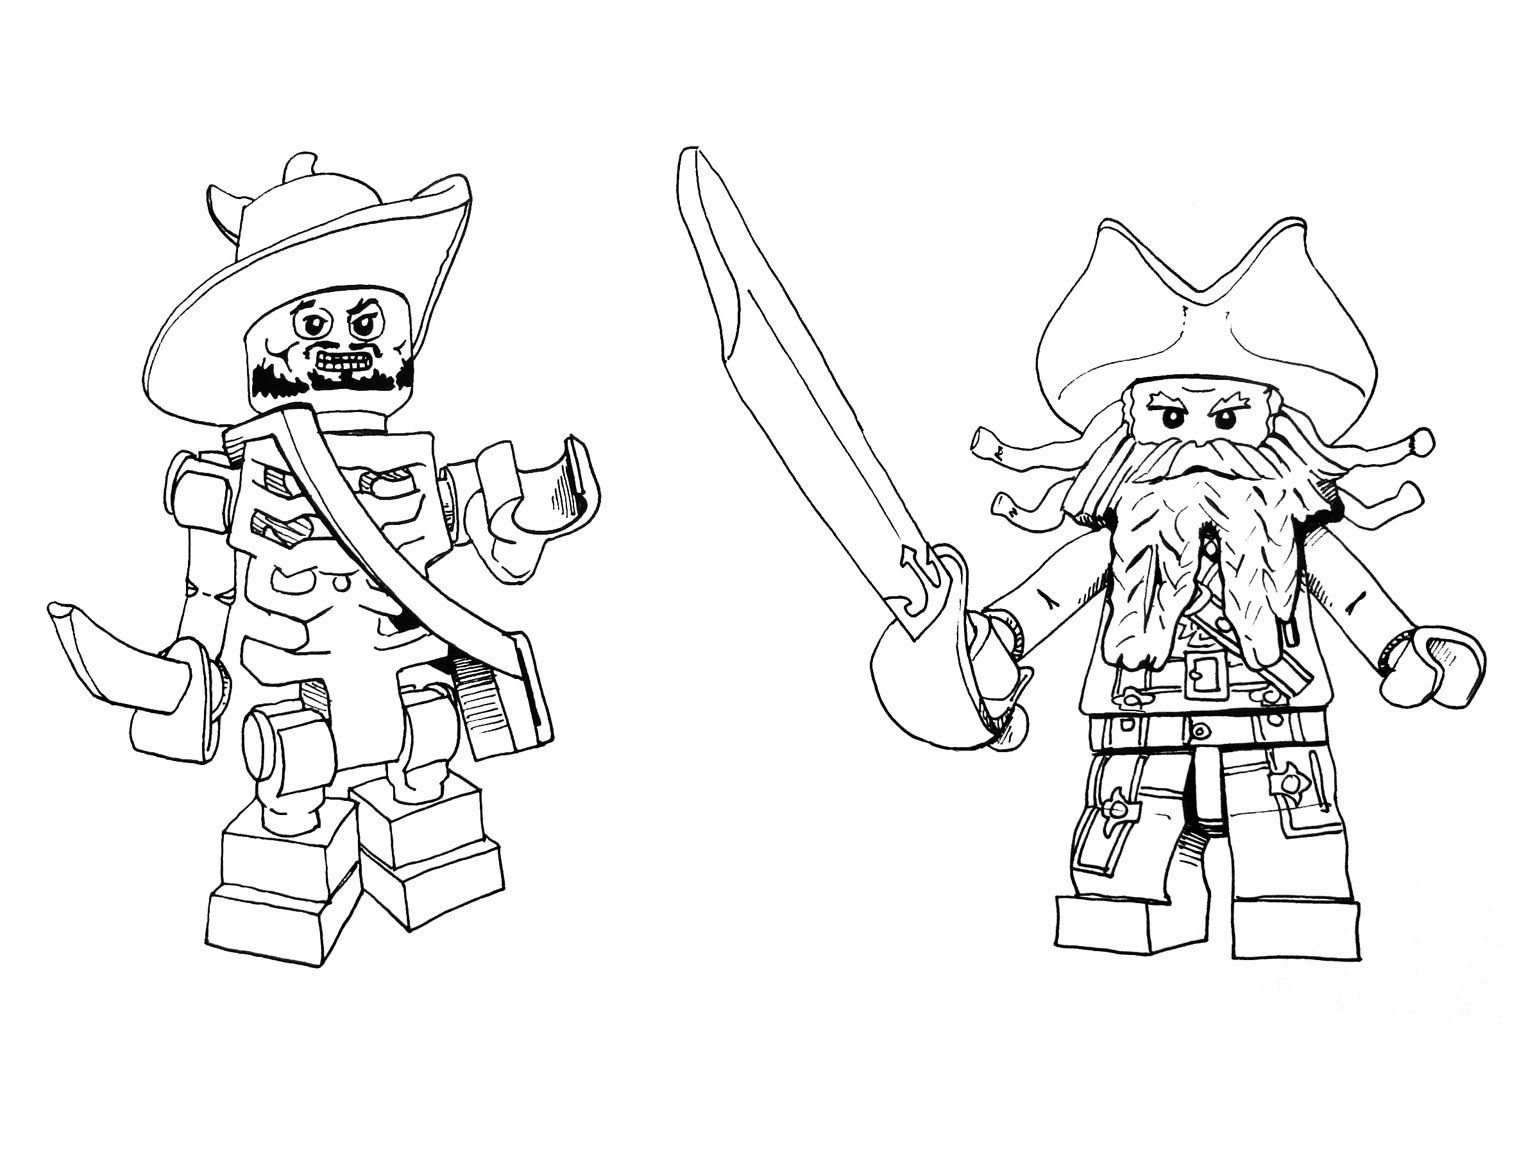 Lego Pirate Coloring Page Lego Coloring Pages Pirate Coloring